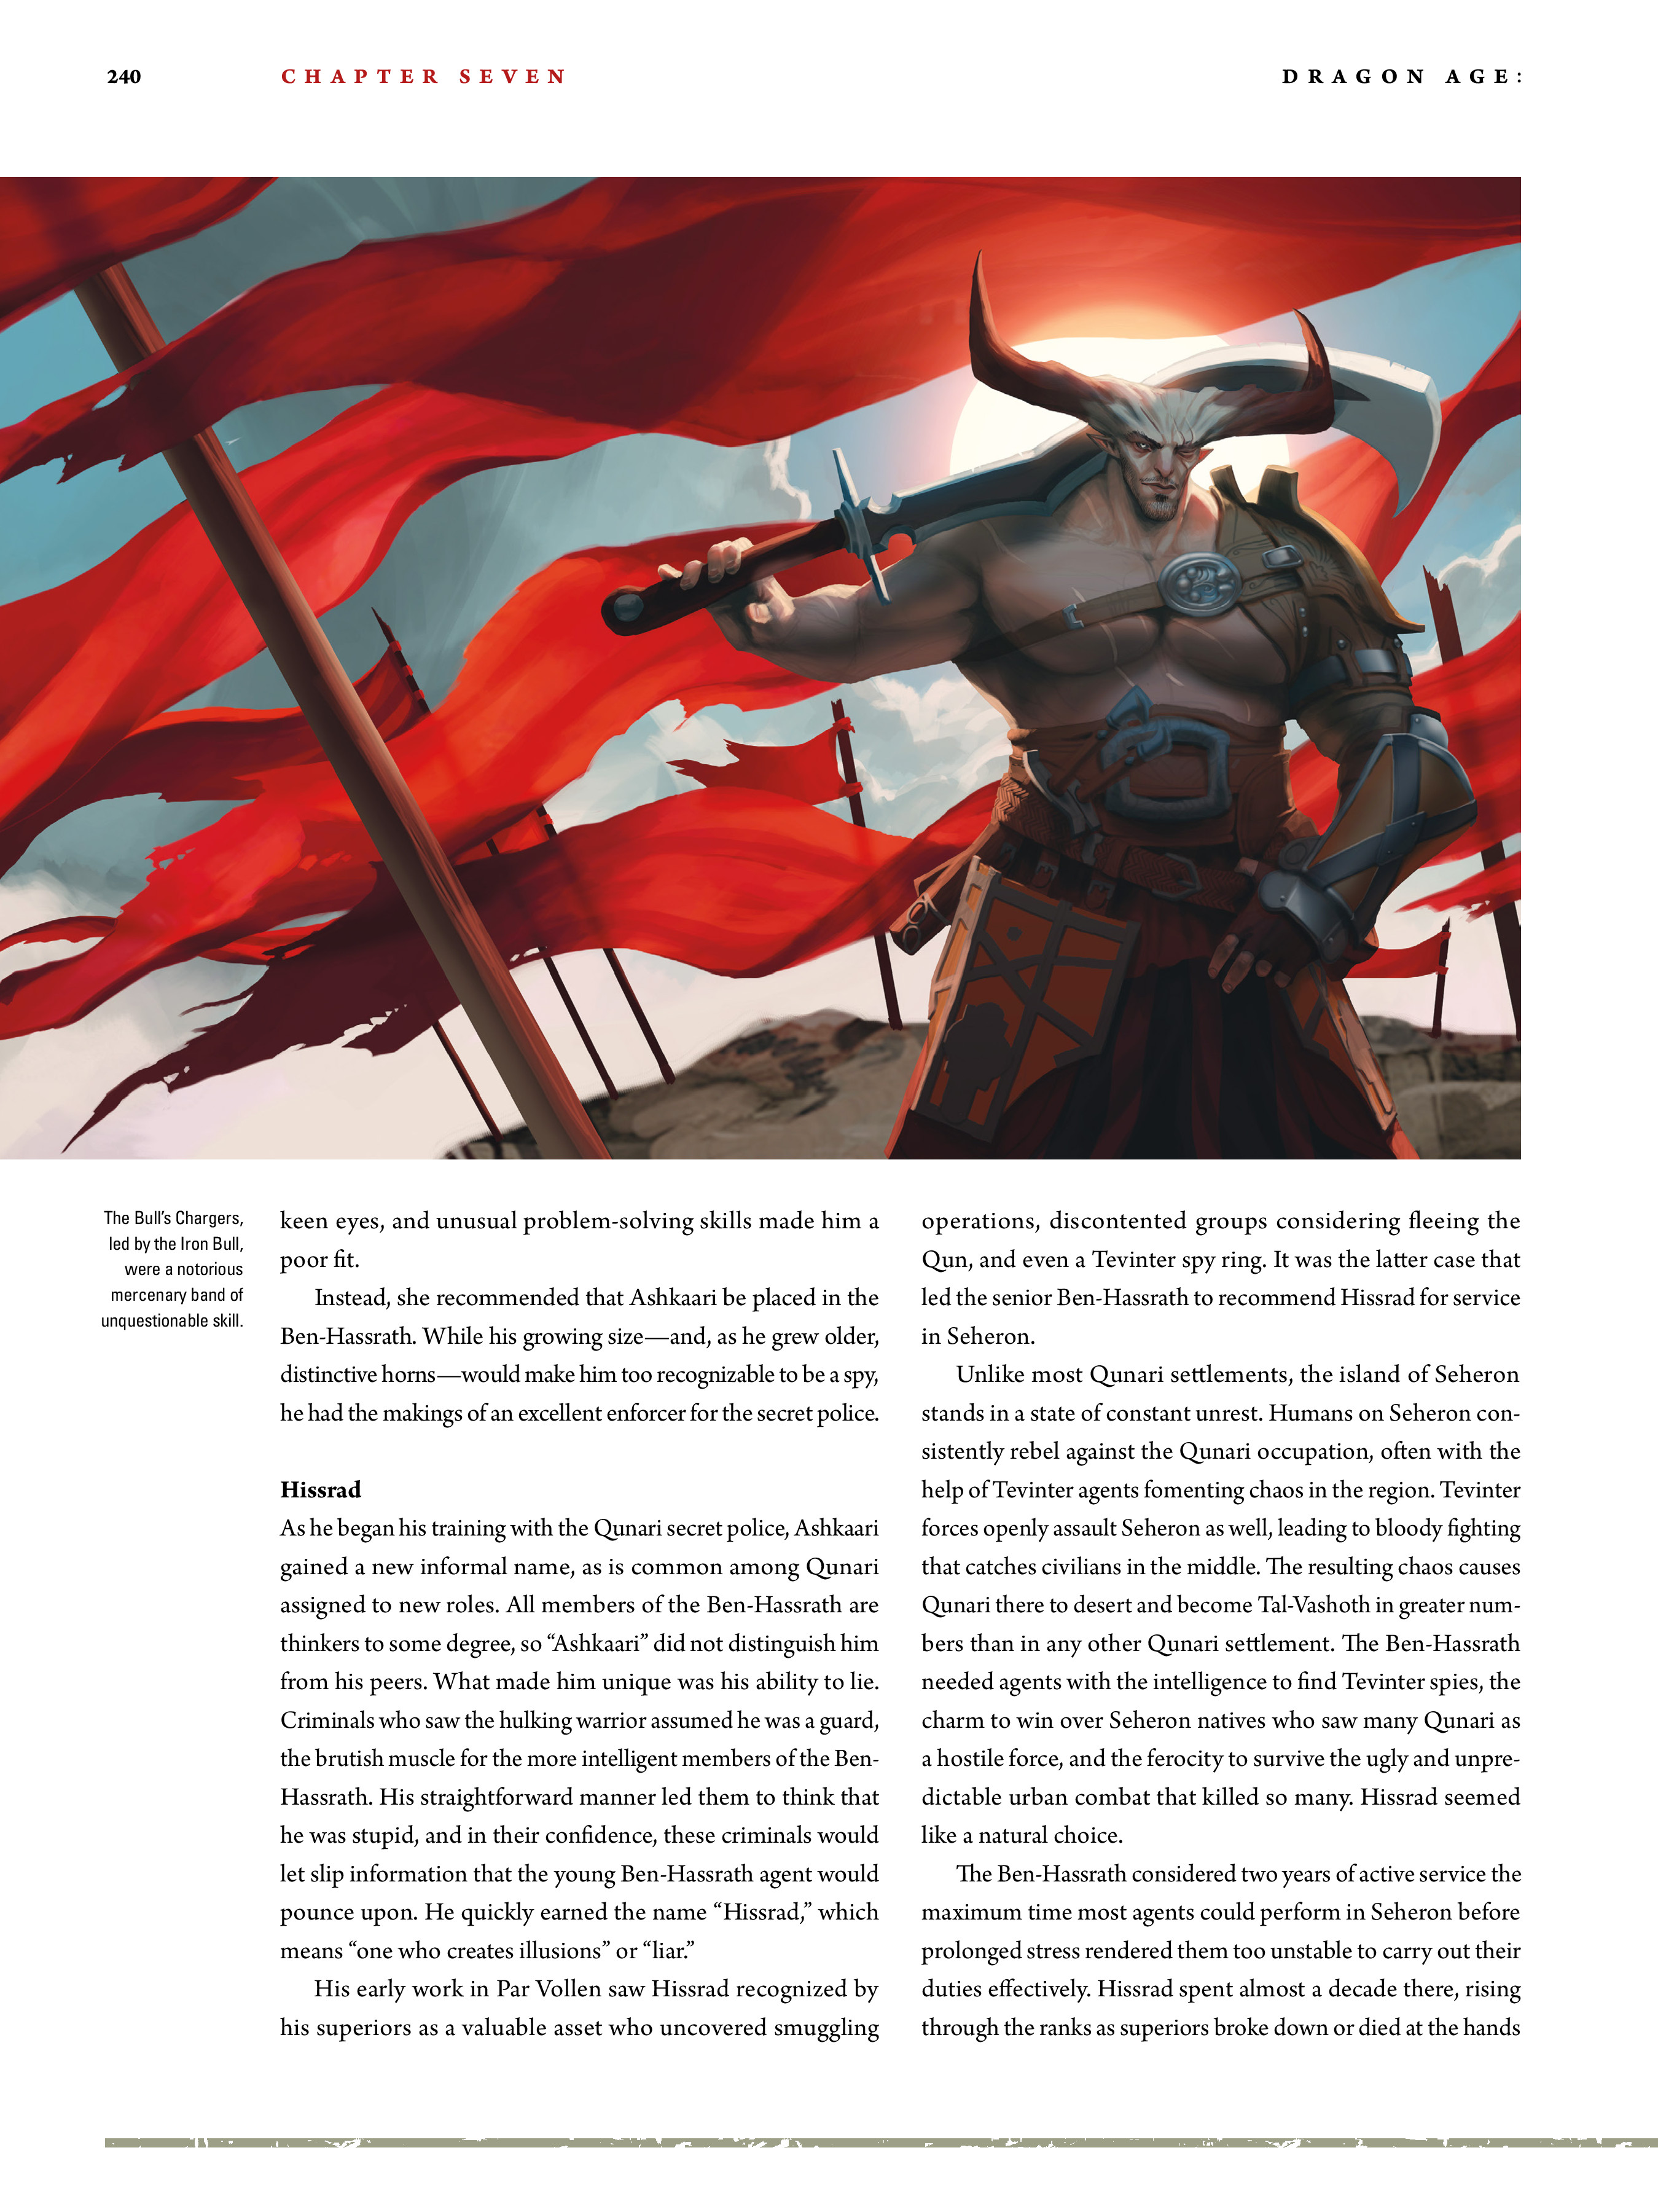 Read online Dragon Age: The World of Thedas comic -  Issue # TPB 2 - 234